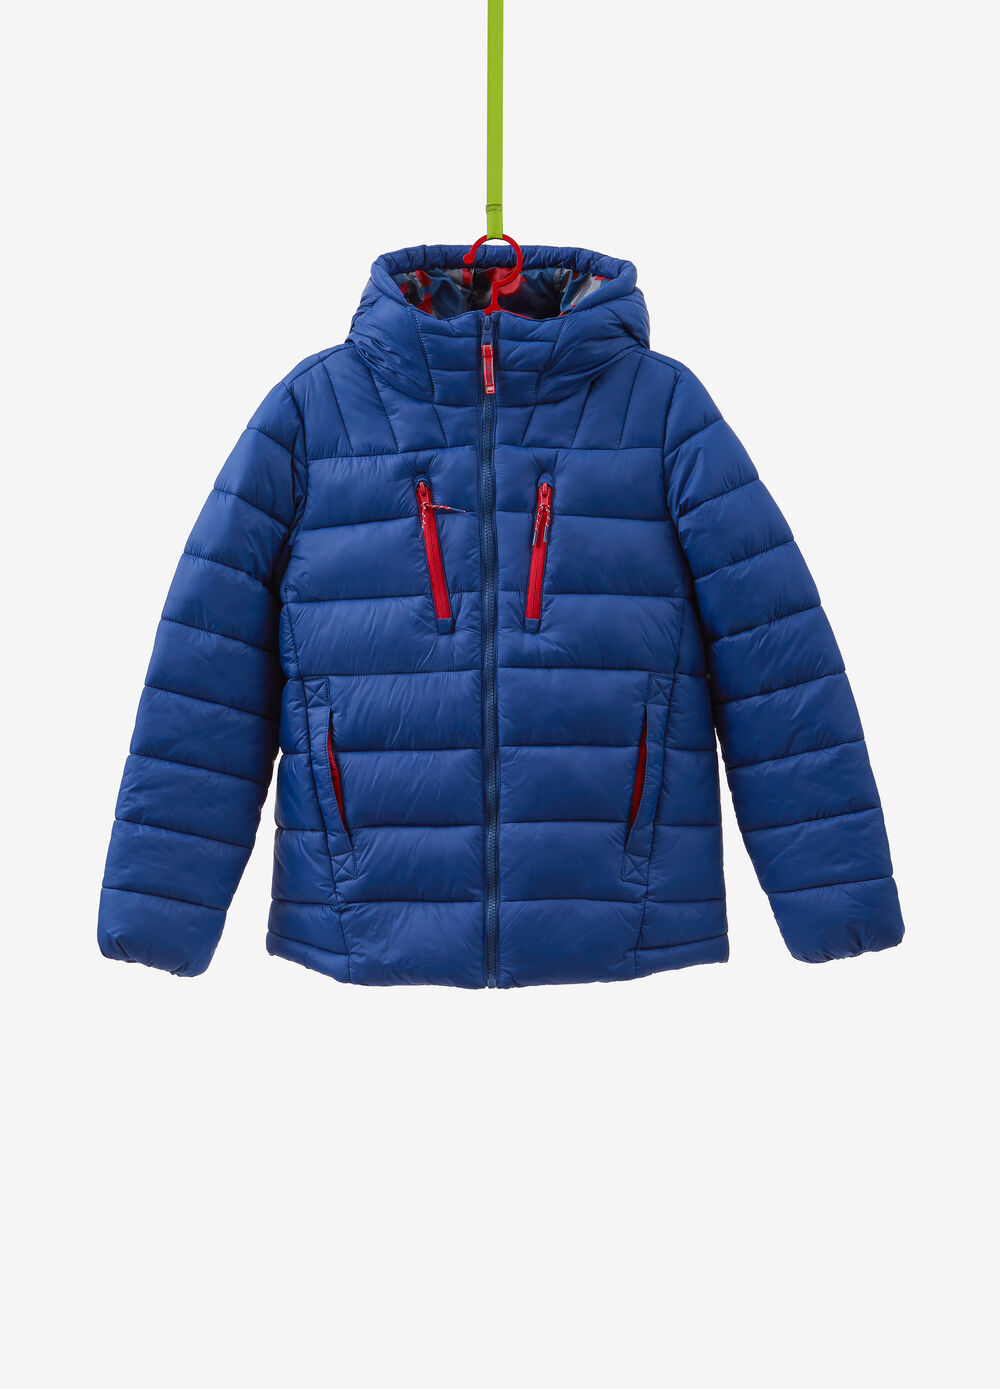 Solid colour jacket with hood and pockets